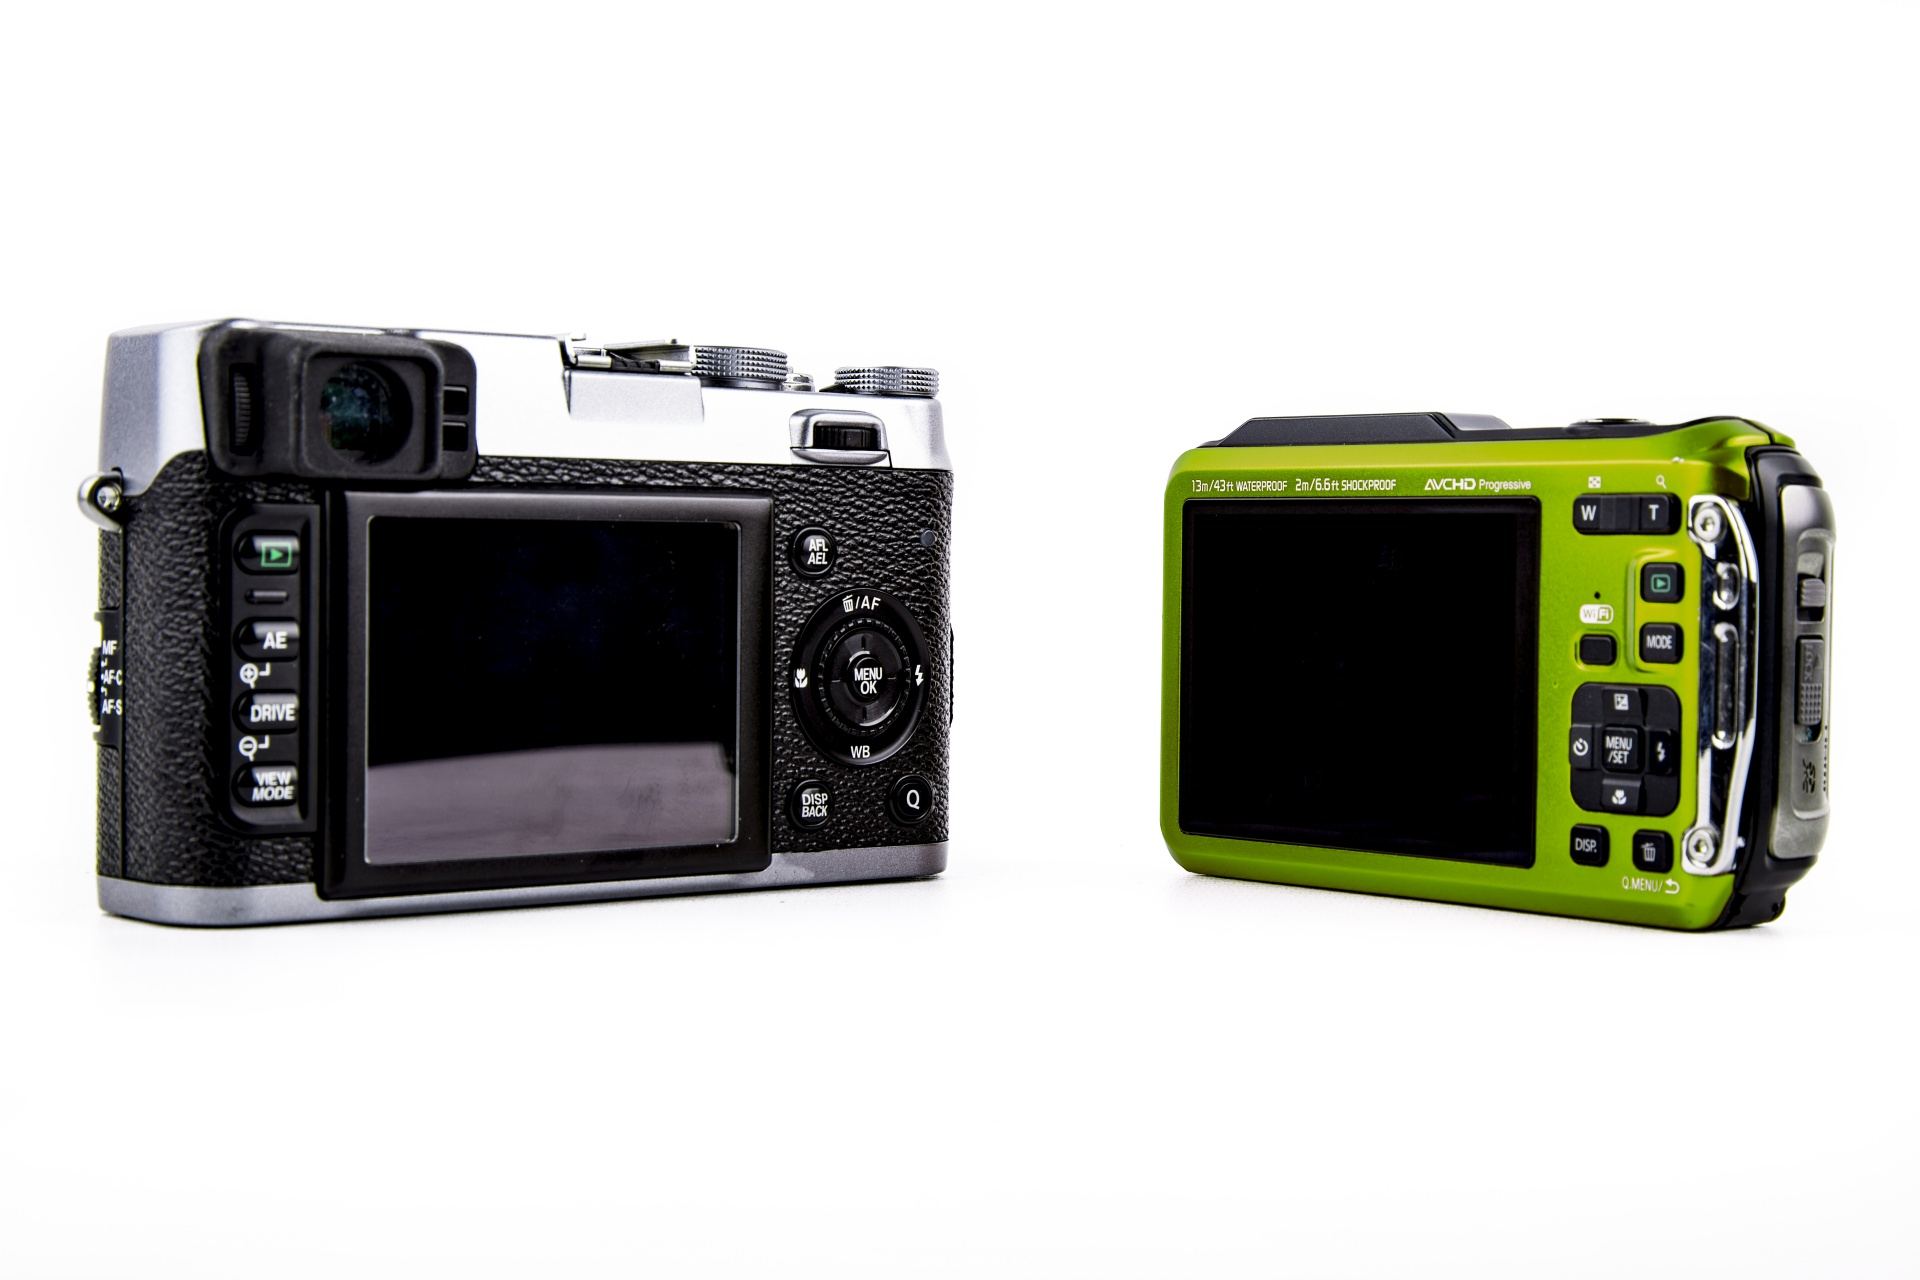 photo showing the back of the DSLR and point and shoot cameras